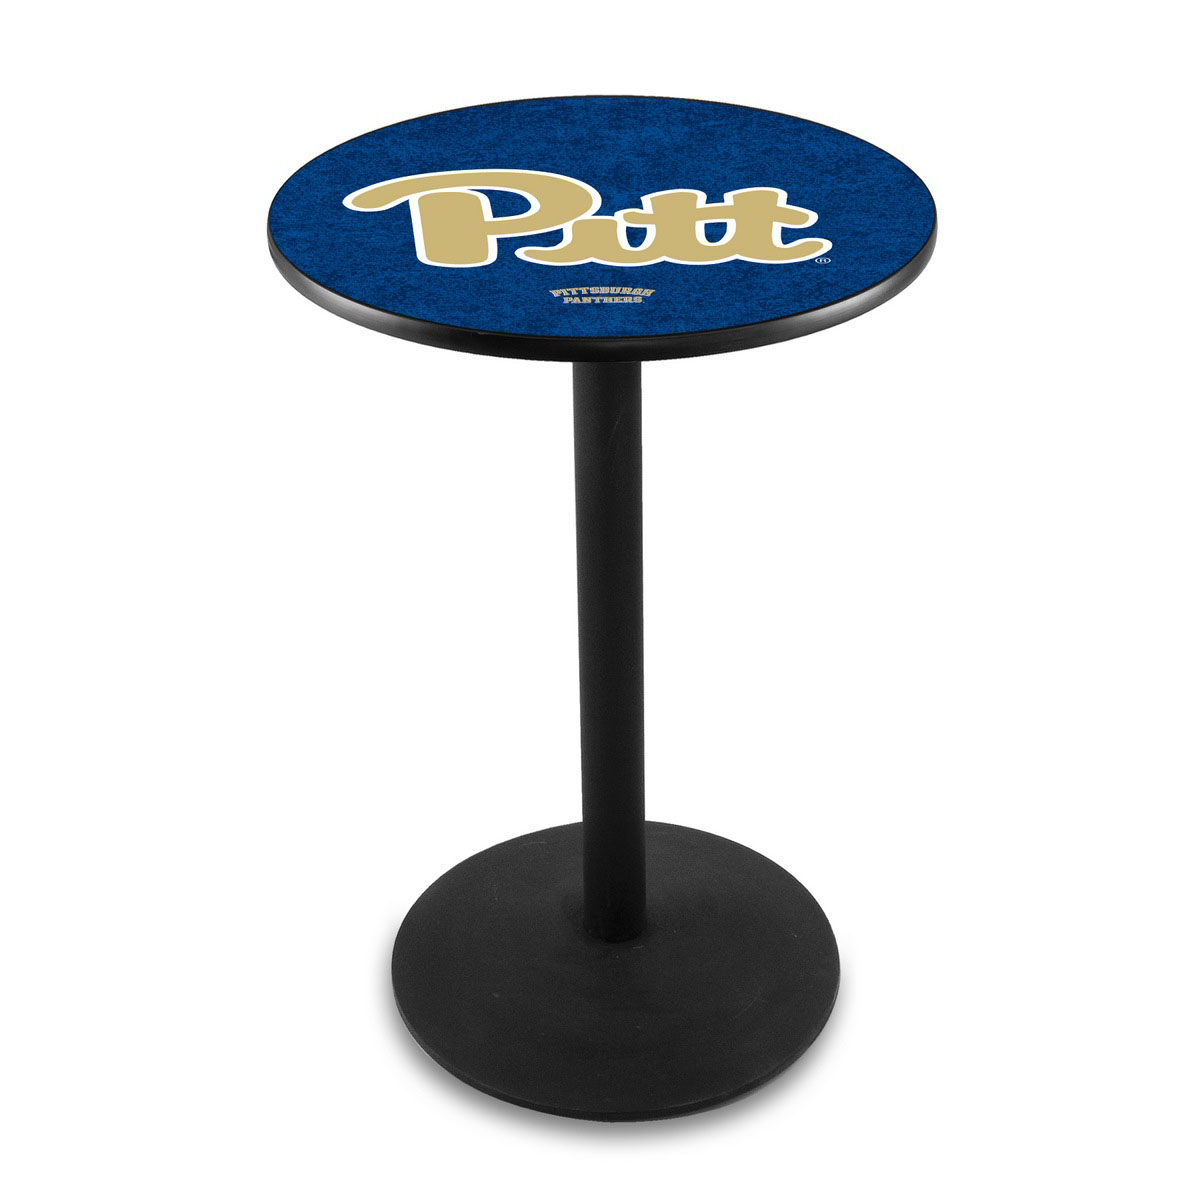 Beautiful University Pittsburgh Logo Pub Bar Table Round Stand Product Photo